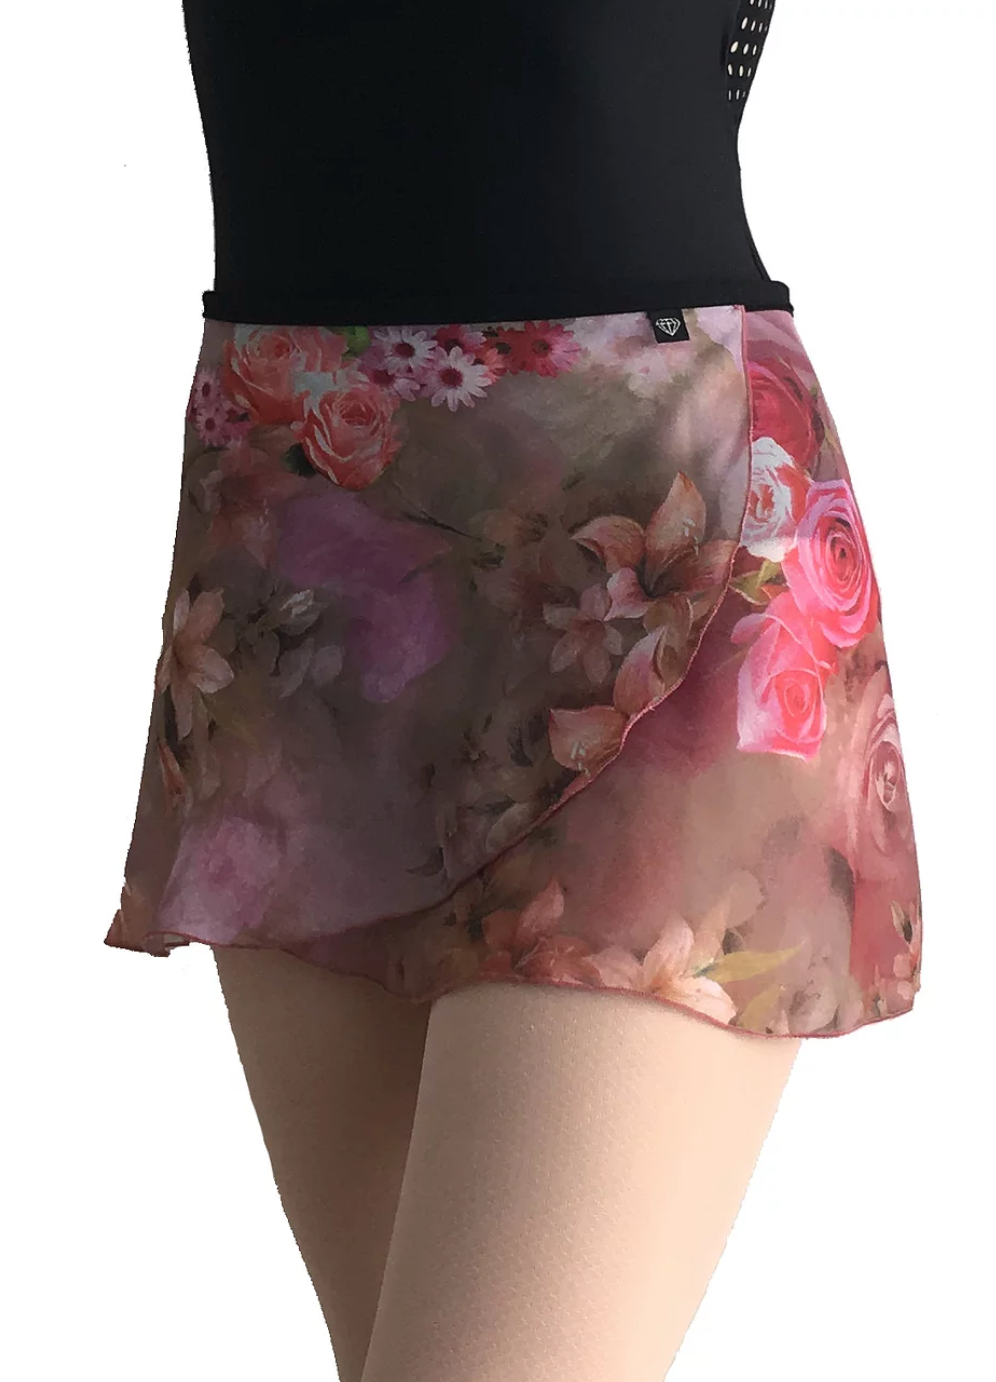 Jule Dancewear Wrap Skirt - All Day Rose